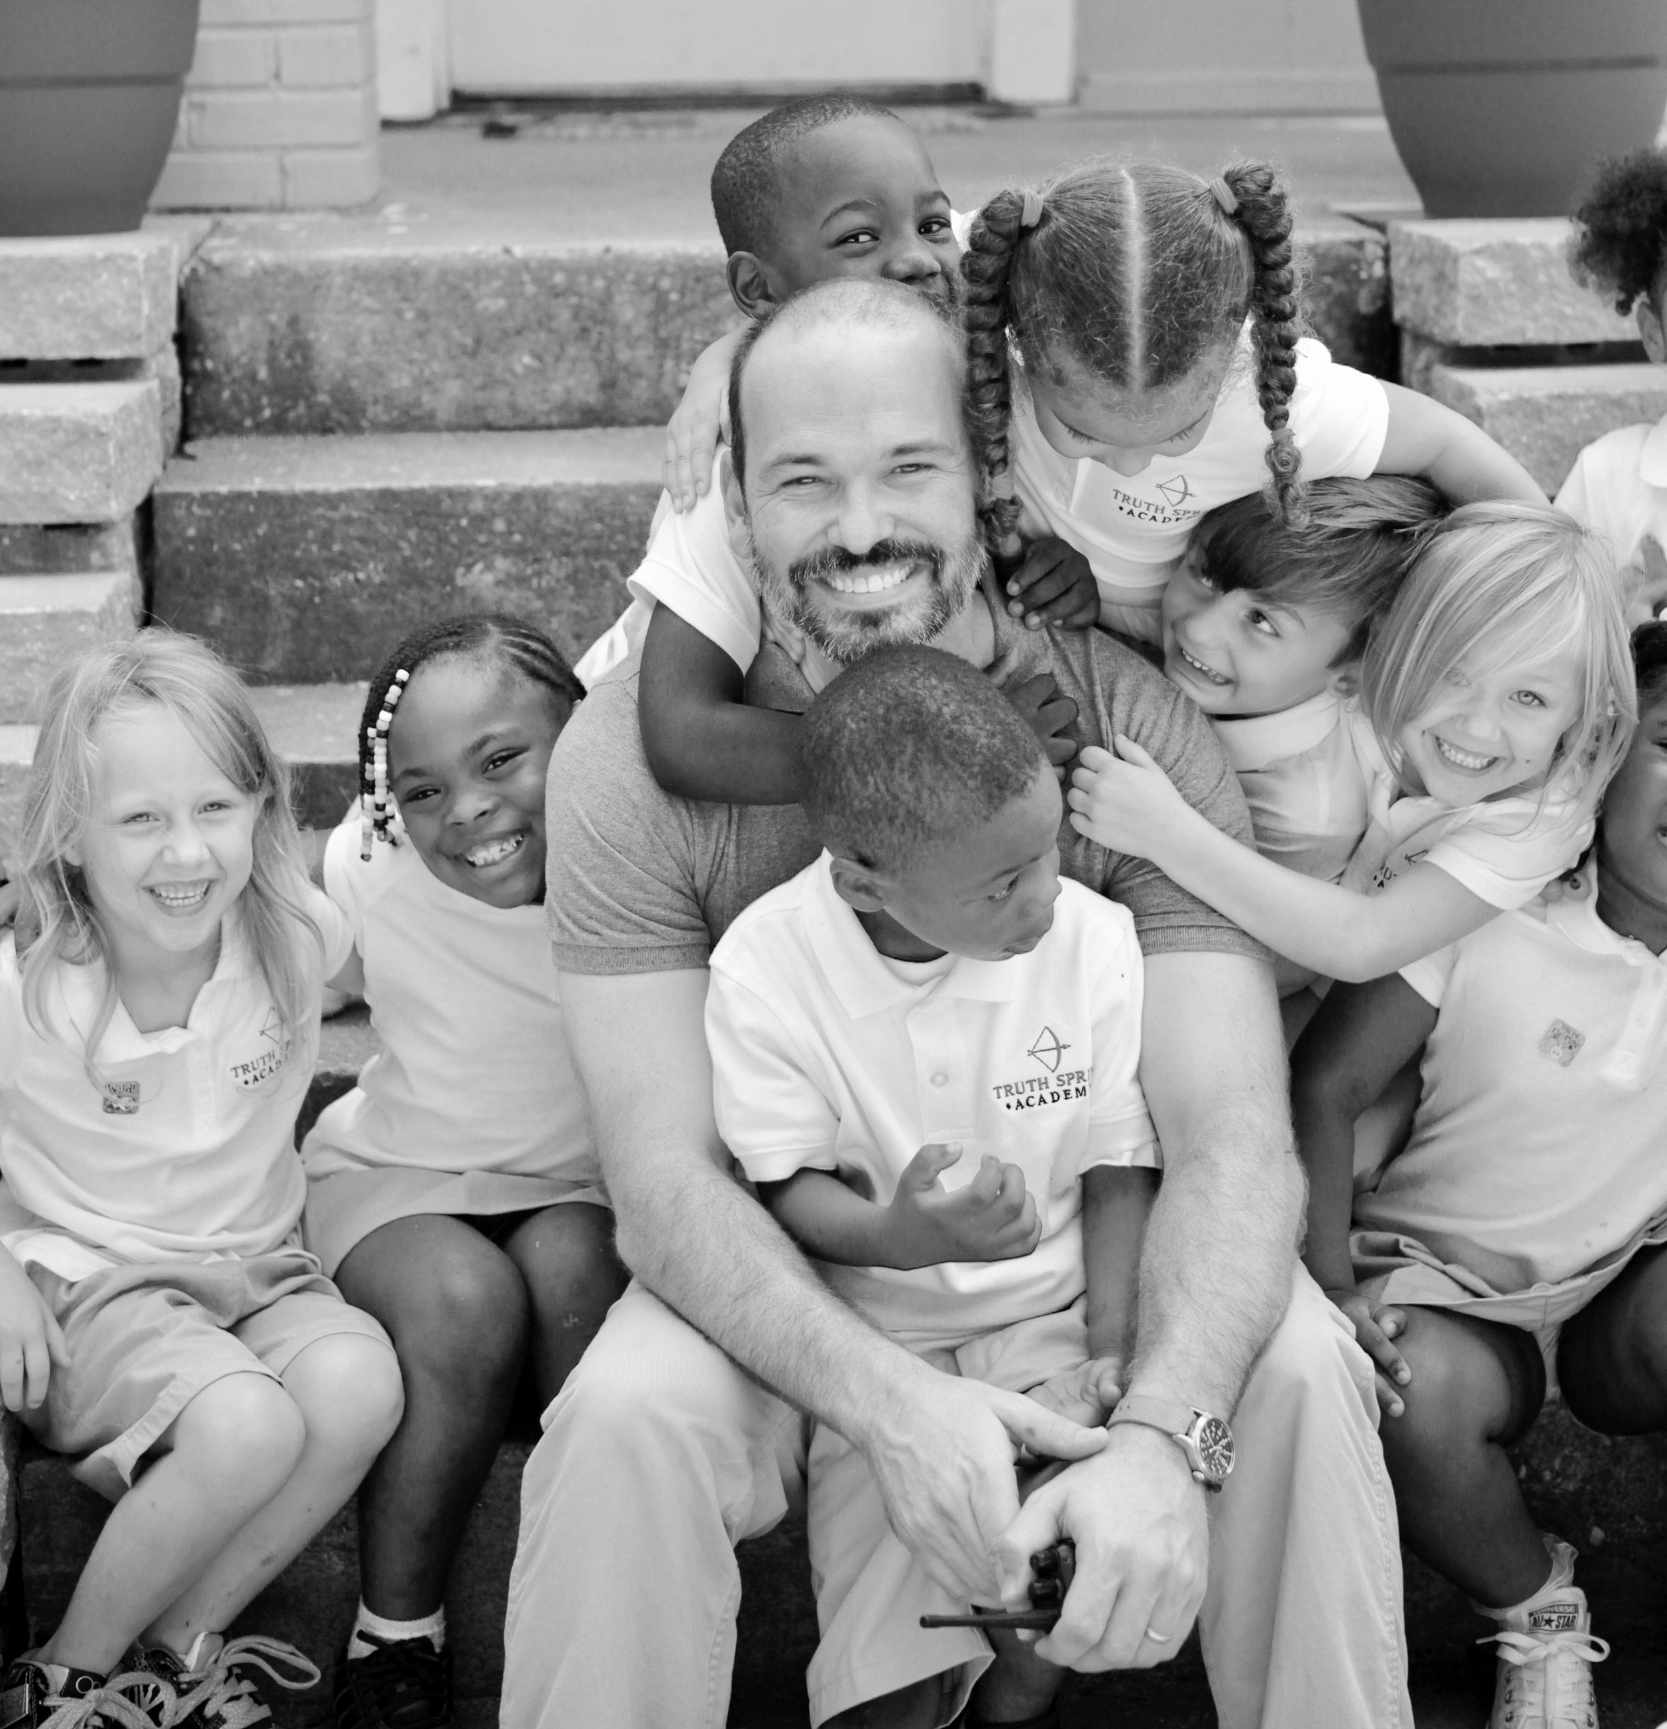 Truth Spring Academy - Truth Spring Academy is a private, Christian school that serves children living in poverty. Our mission is to rebuild a foundation of Christ-centered living by offering a quality, Christian education that focuses on challenging academics, character development, and servant leadership.Learn more